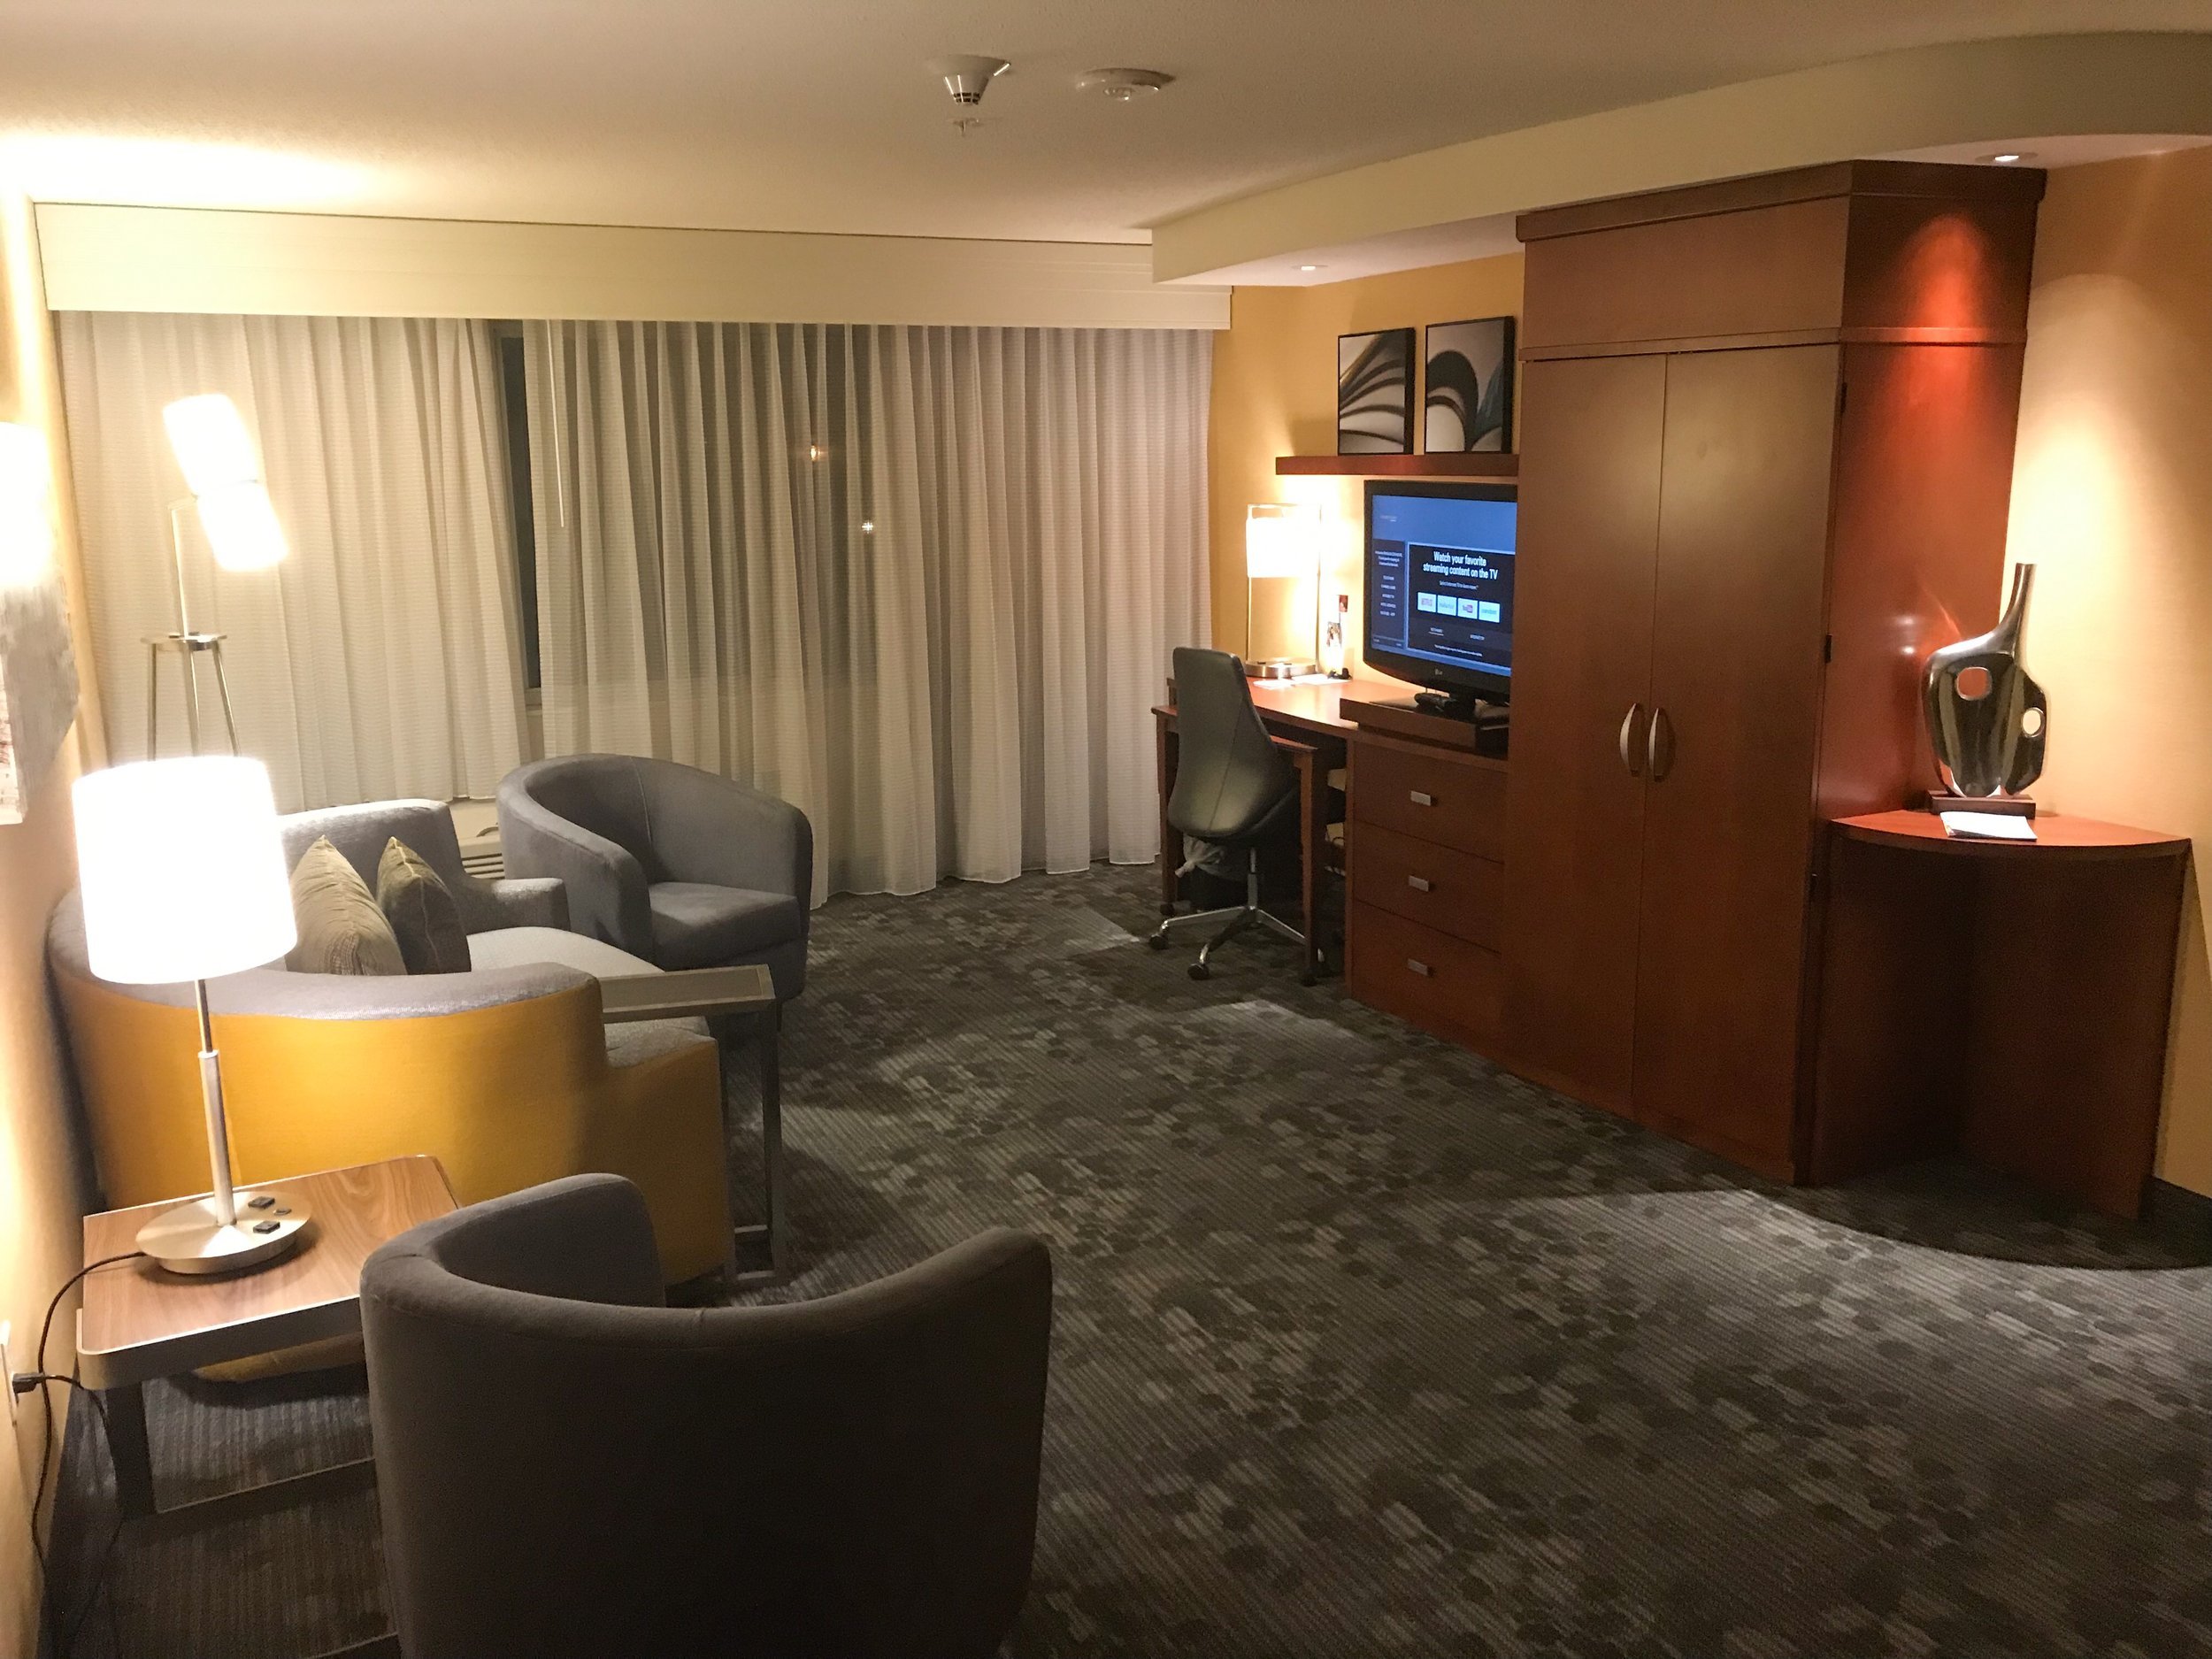 The living room area of the King Suite.